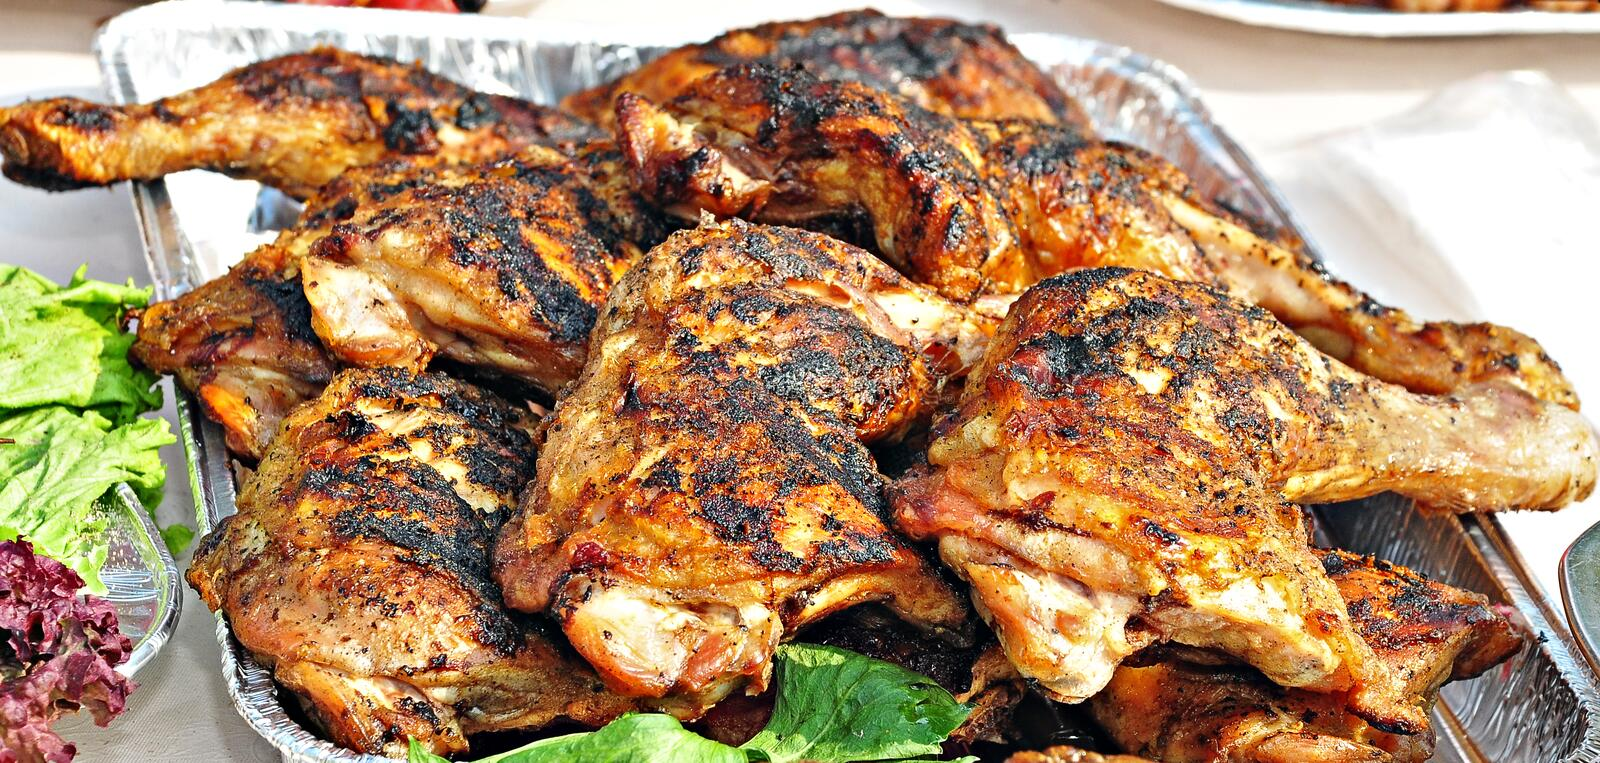 Chicken barbecue. On a plateau stock photo